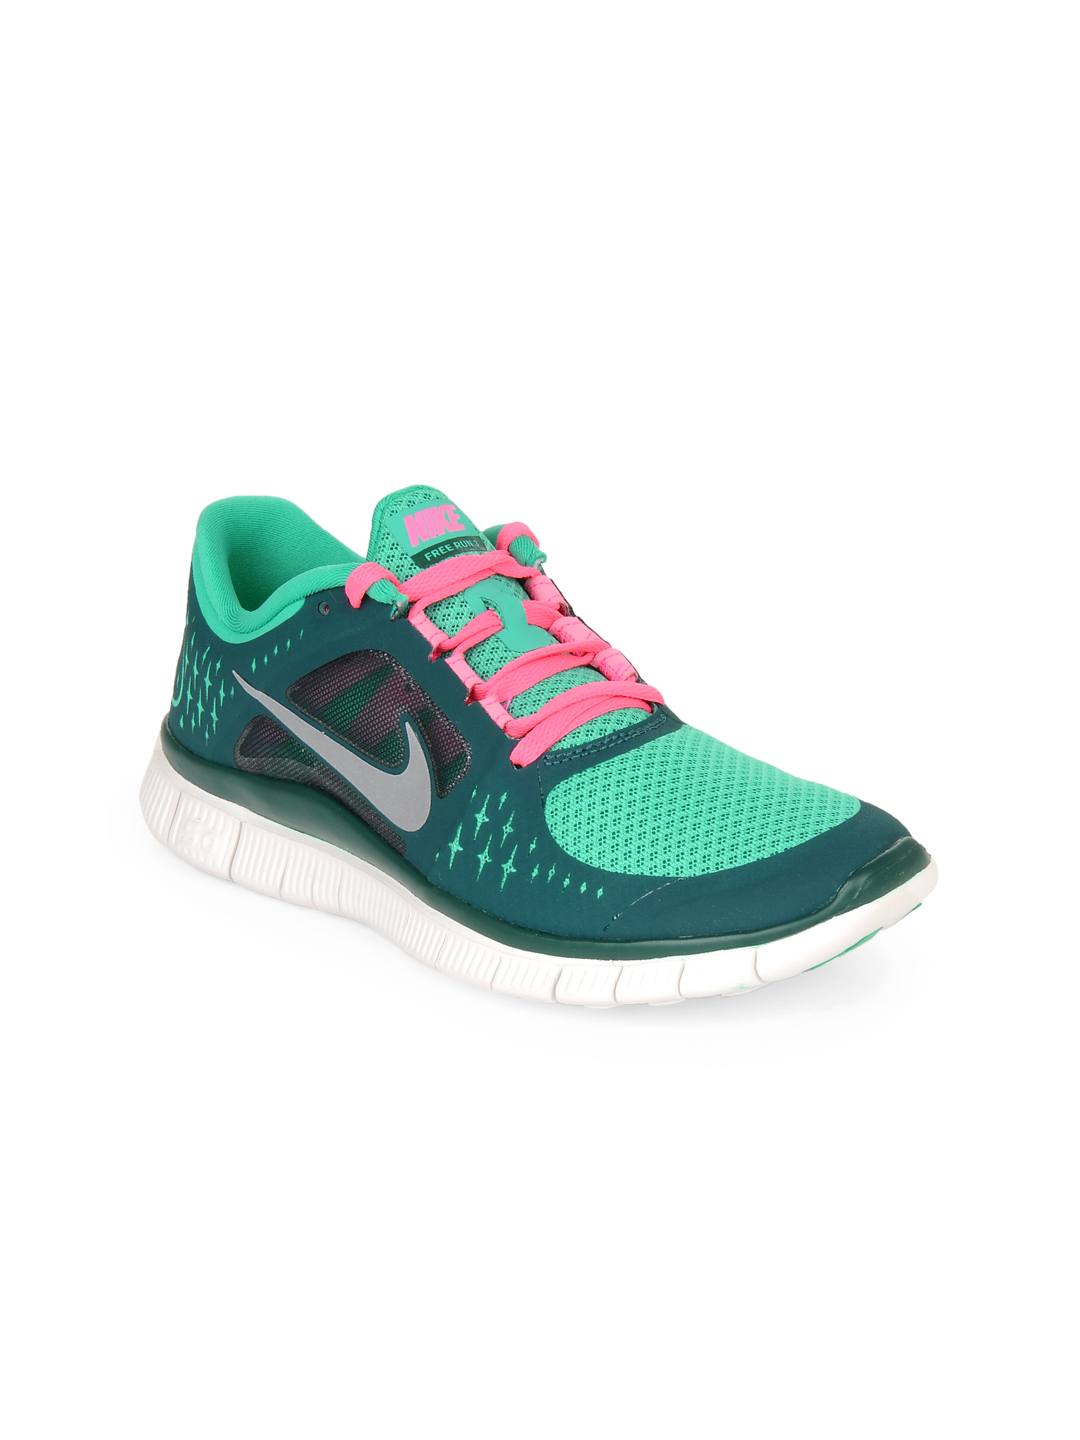 Nike sneakers,cheap nike free womens sneakers,Boys Nike Frees for discount,Mens